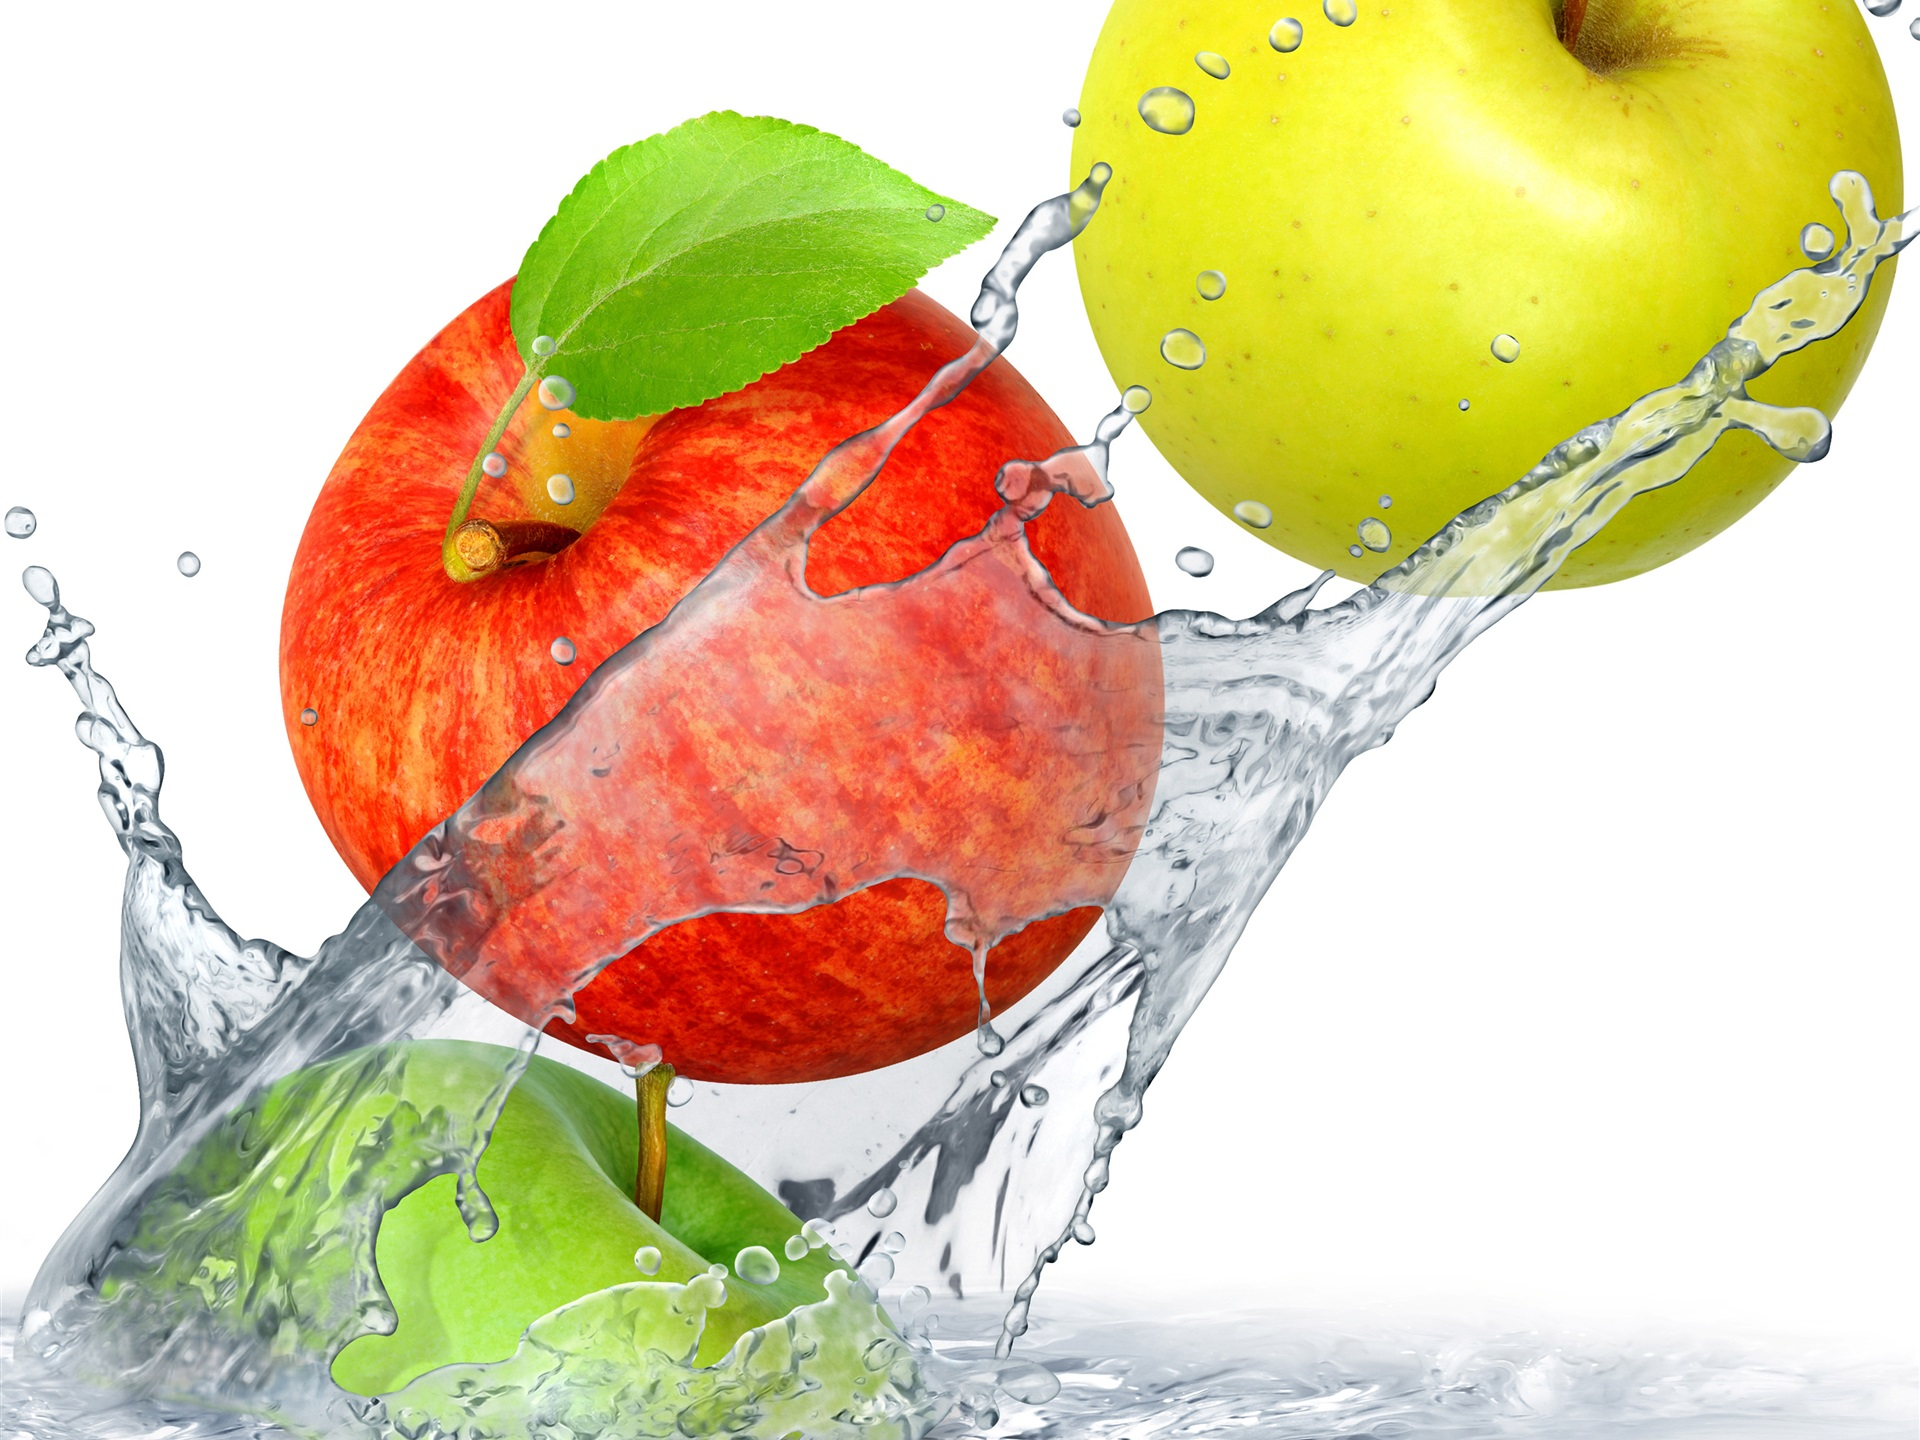 Red-and-green-apples-falling-in-water_1920x1440